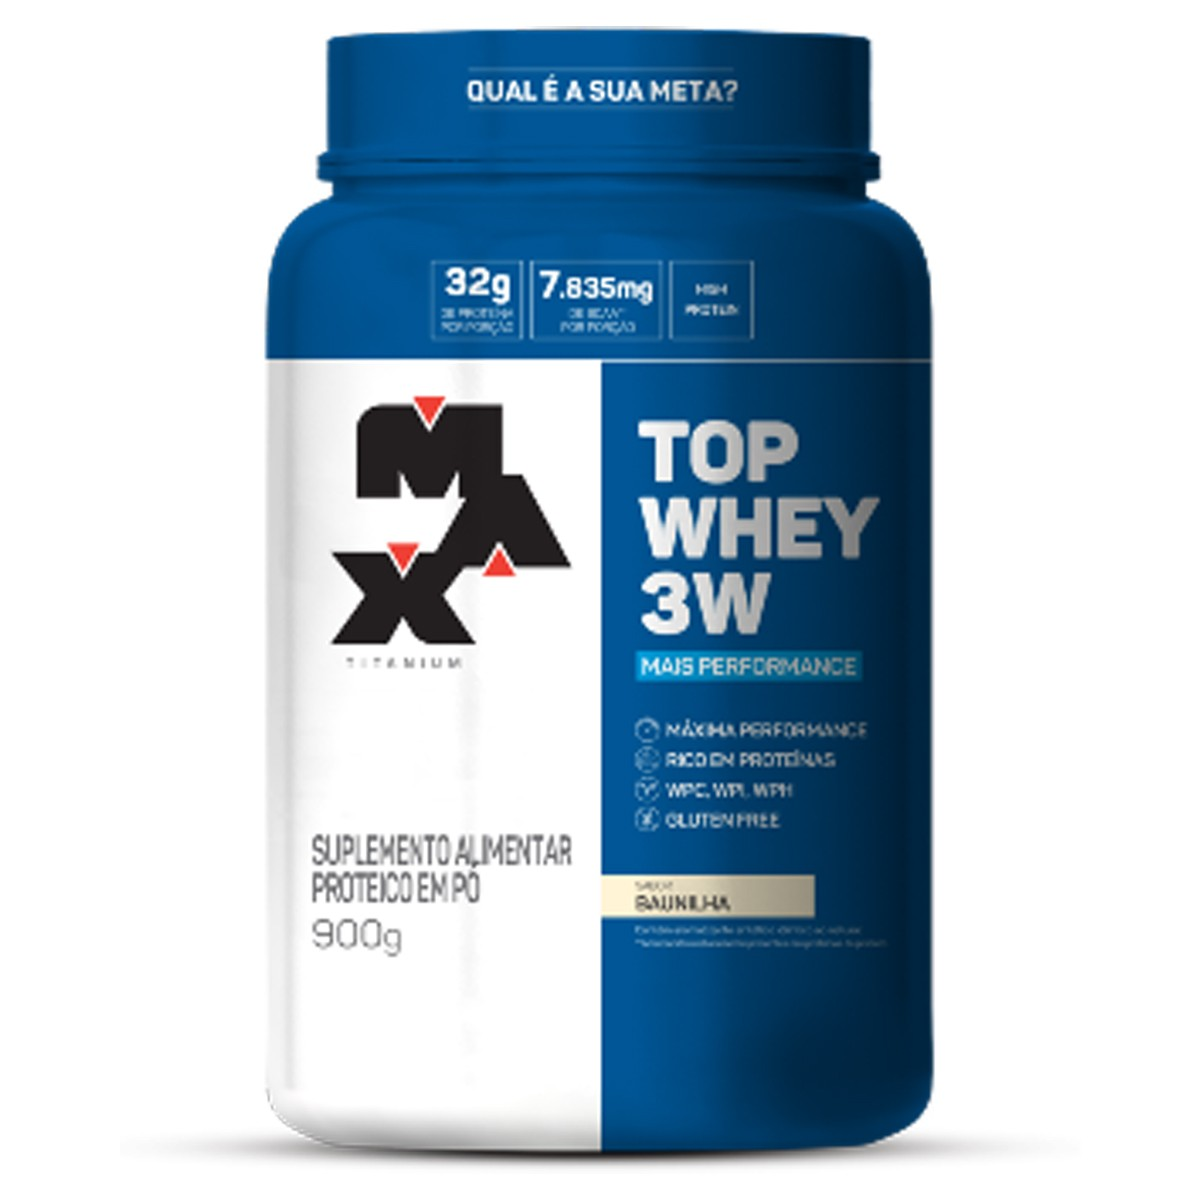 Top Whey 3W Mais Performance 900g - Max Titanium